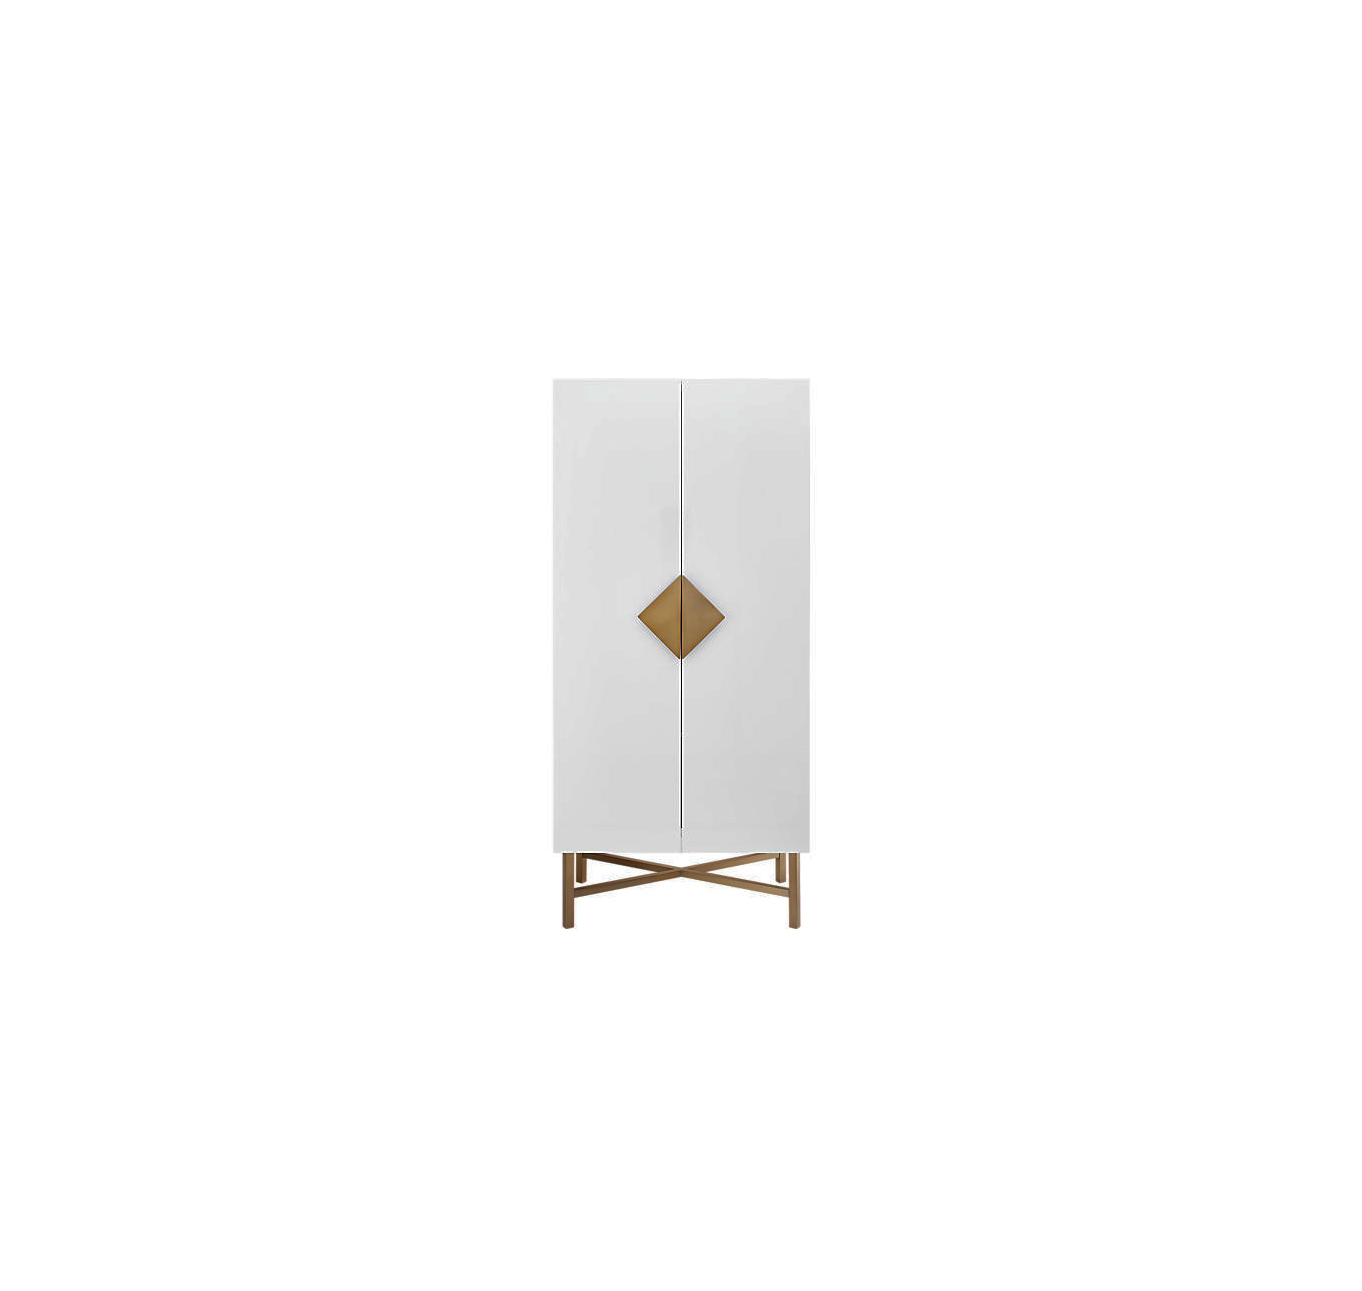 Best for Luxe Bedrooms: CB2 Astoria Wardrobe